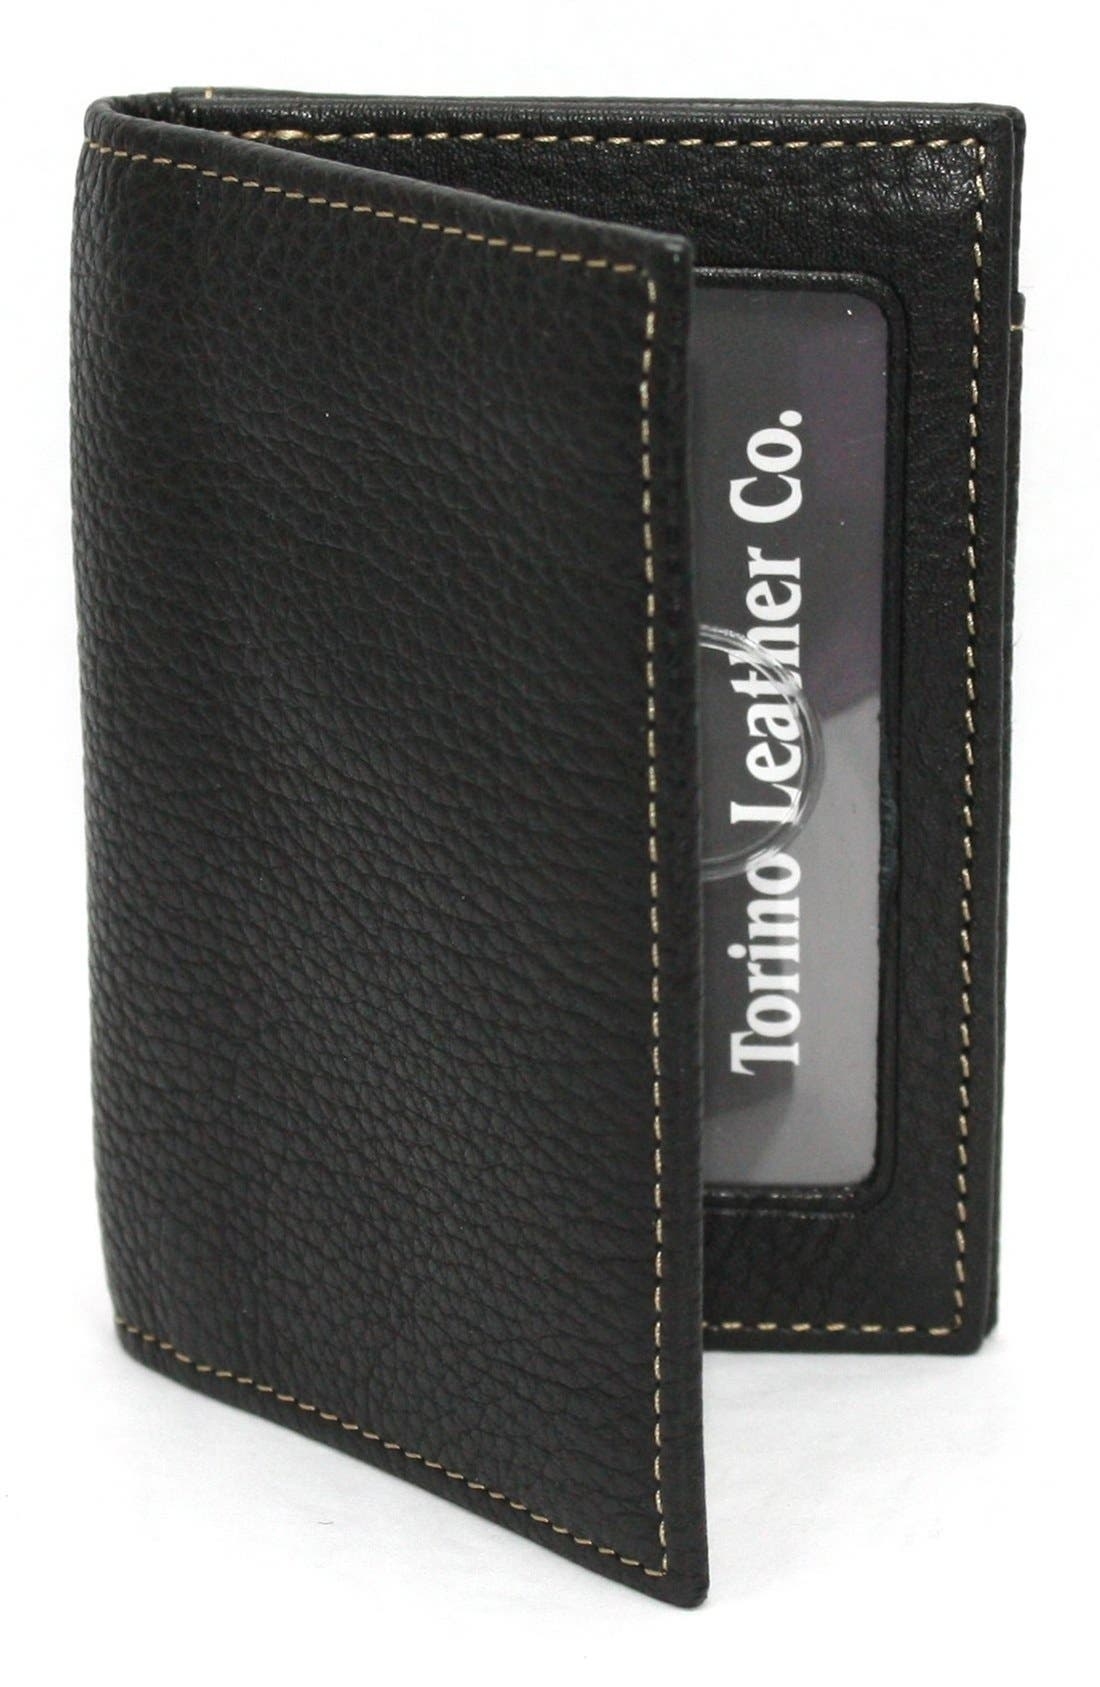 Main Image - Torino Belts Leather Card Case